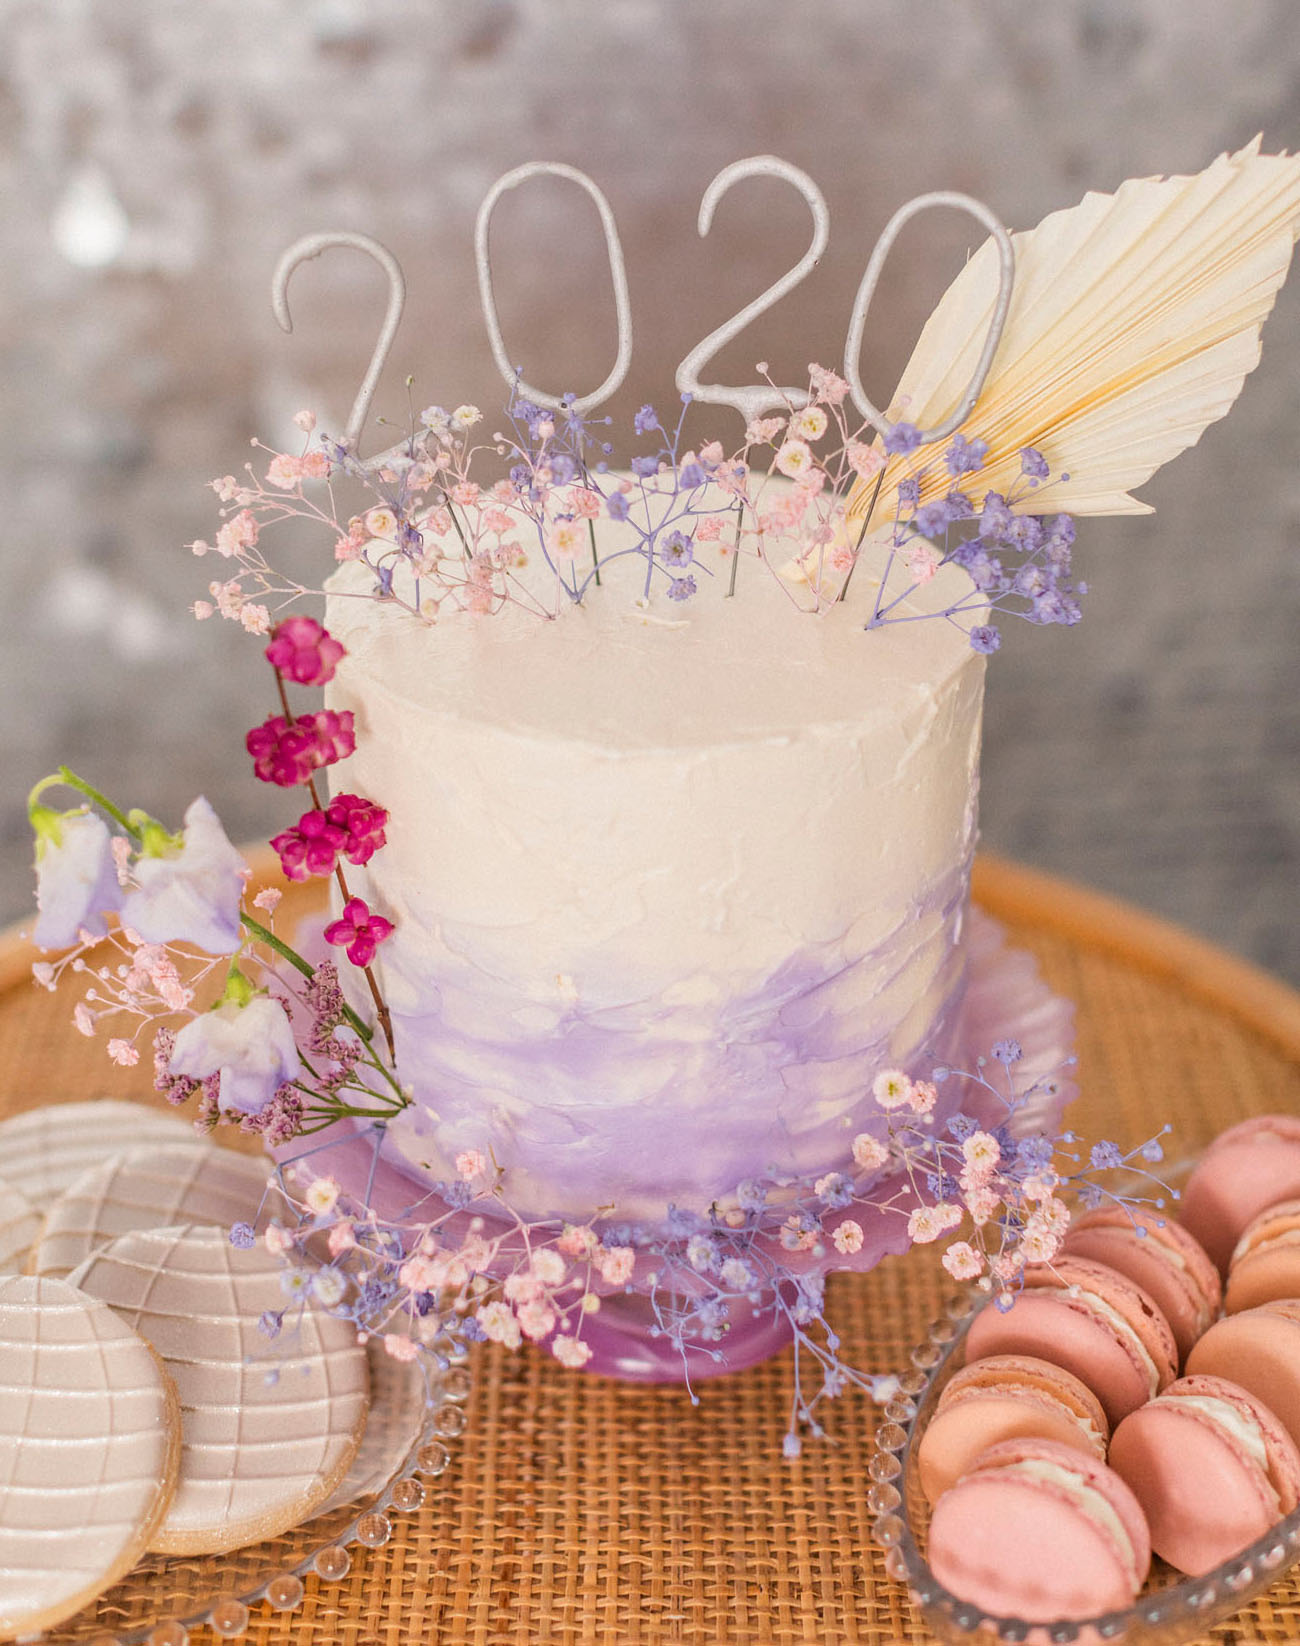 The wedding cake was an ombre lilac one, decorated with numbers and blooms